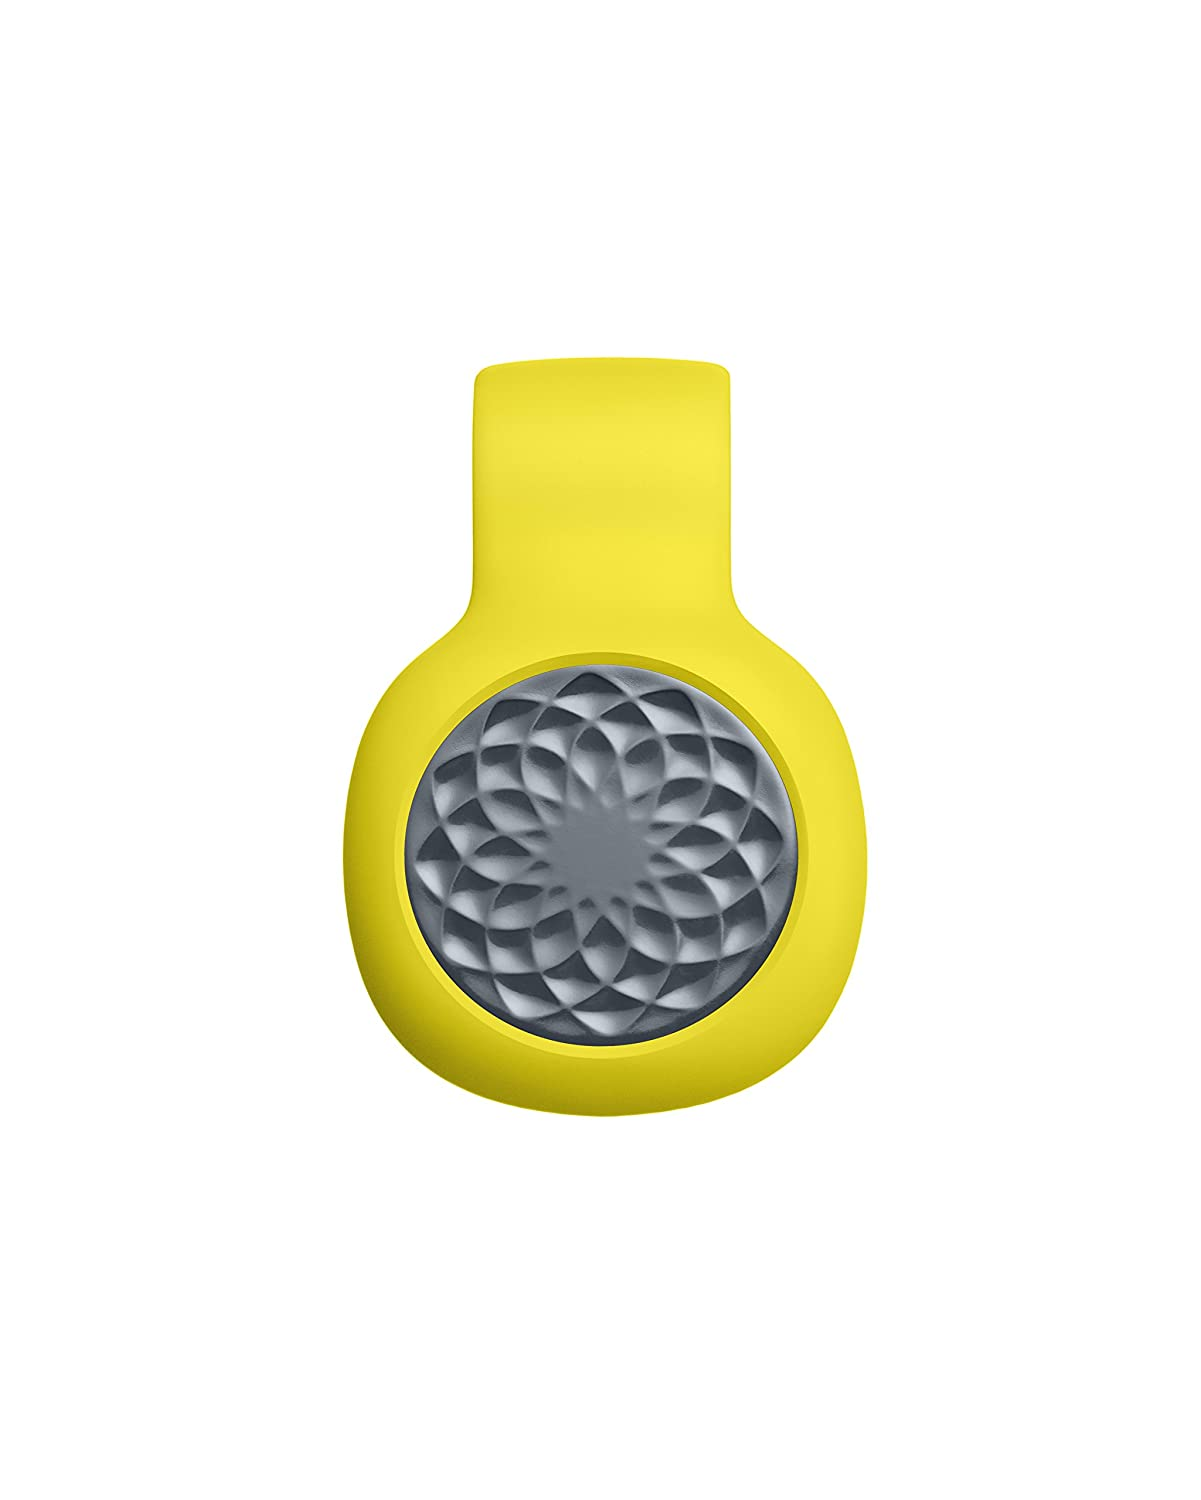 UP MOVE by Jawbone Activity + Sleep Tracker, Slate with Yellow Clip JL06-13A04-US